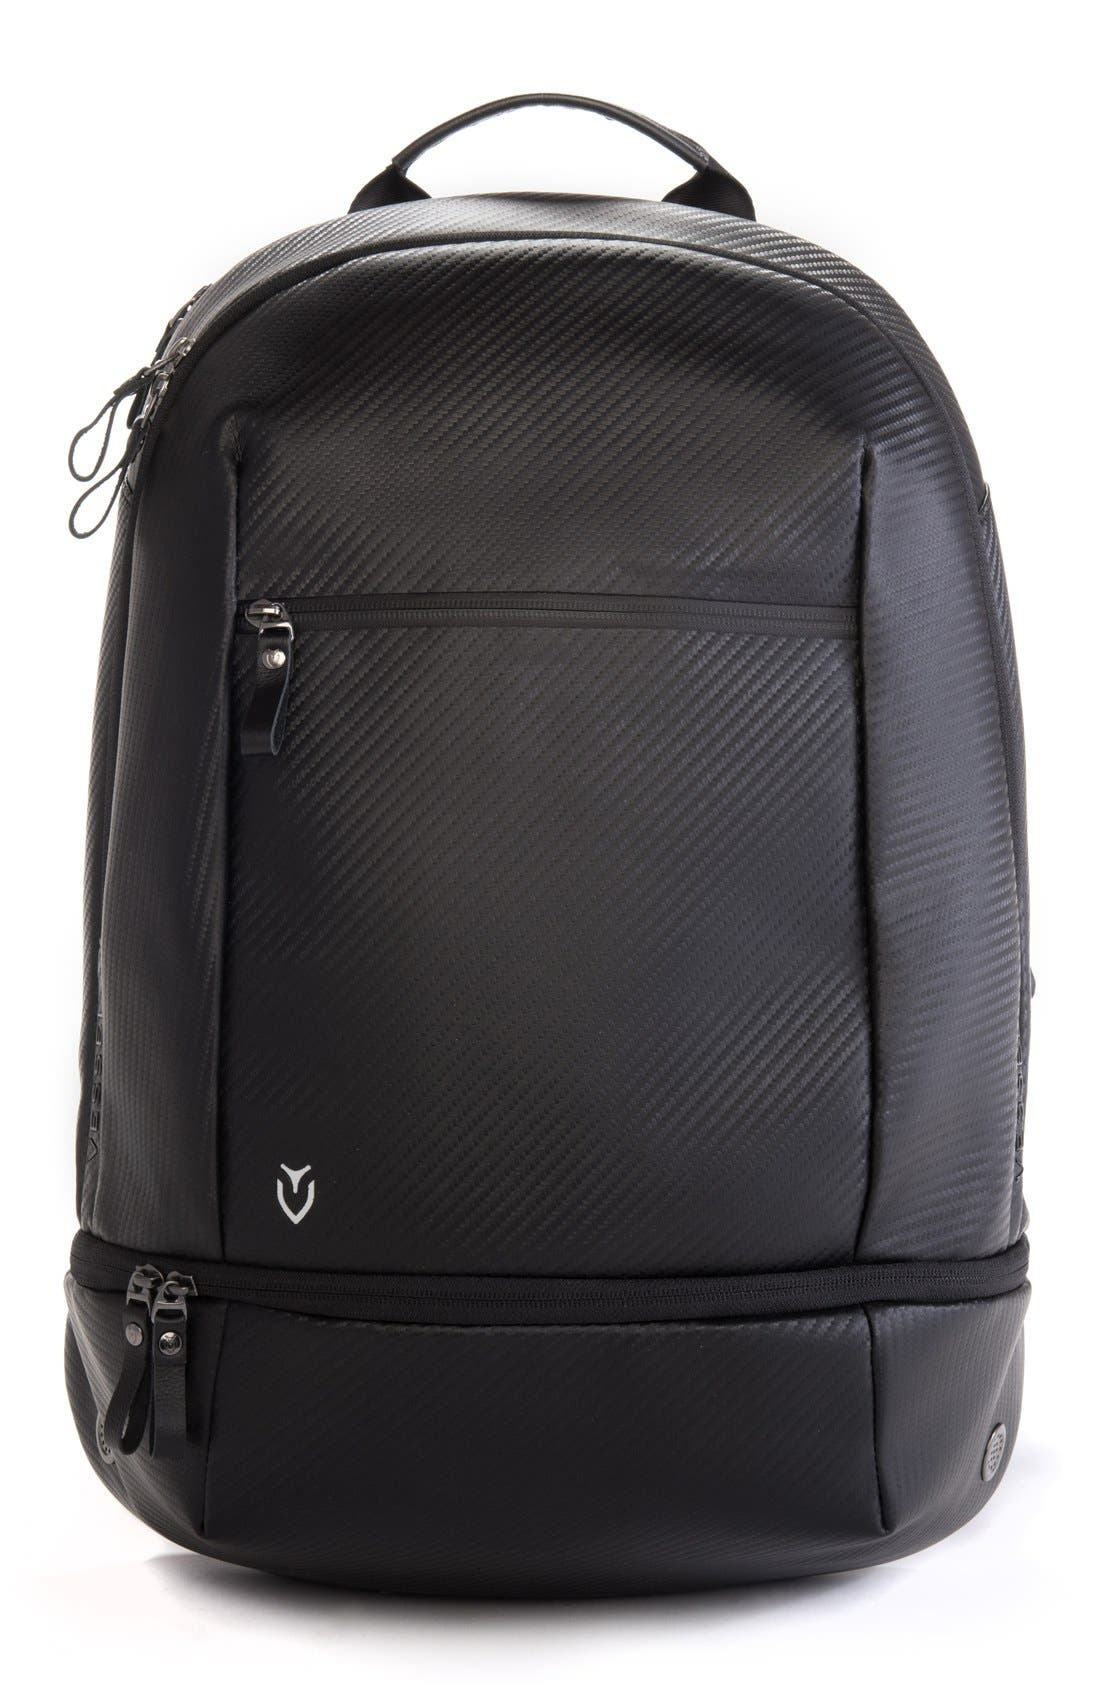 VESSEL Signature Backpack